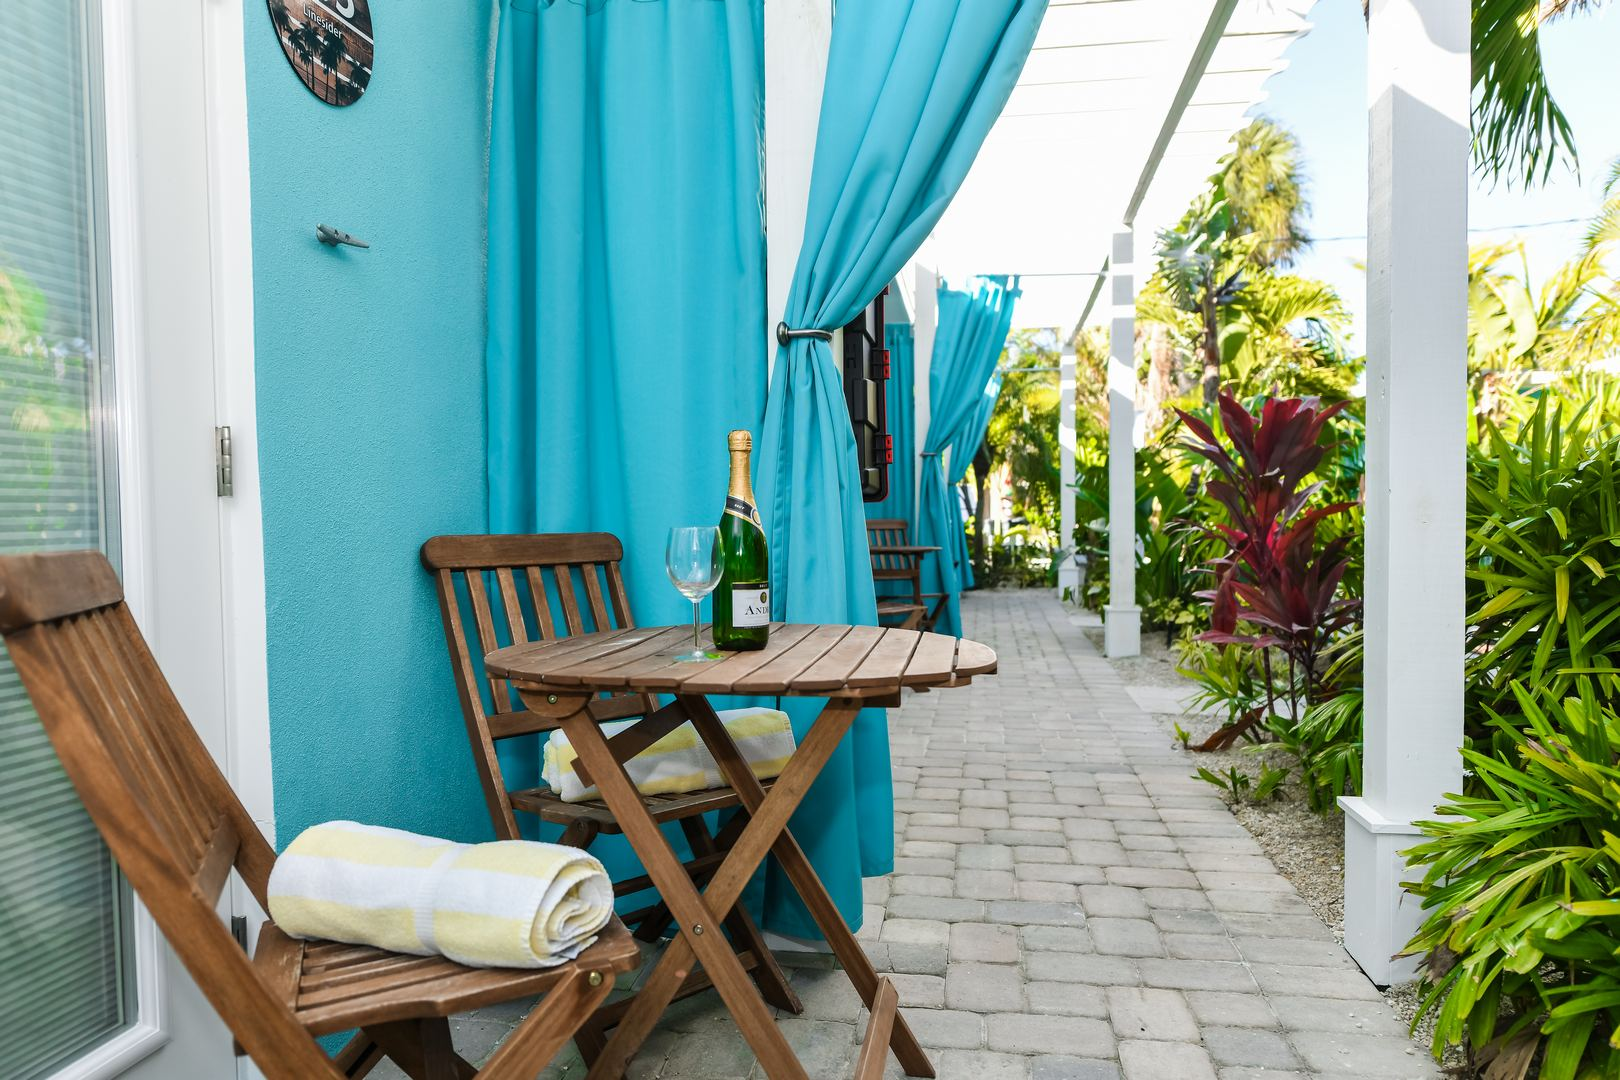 Private Patio for Your Resort Room w/ Great Courtyard Views